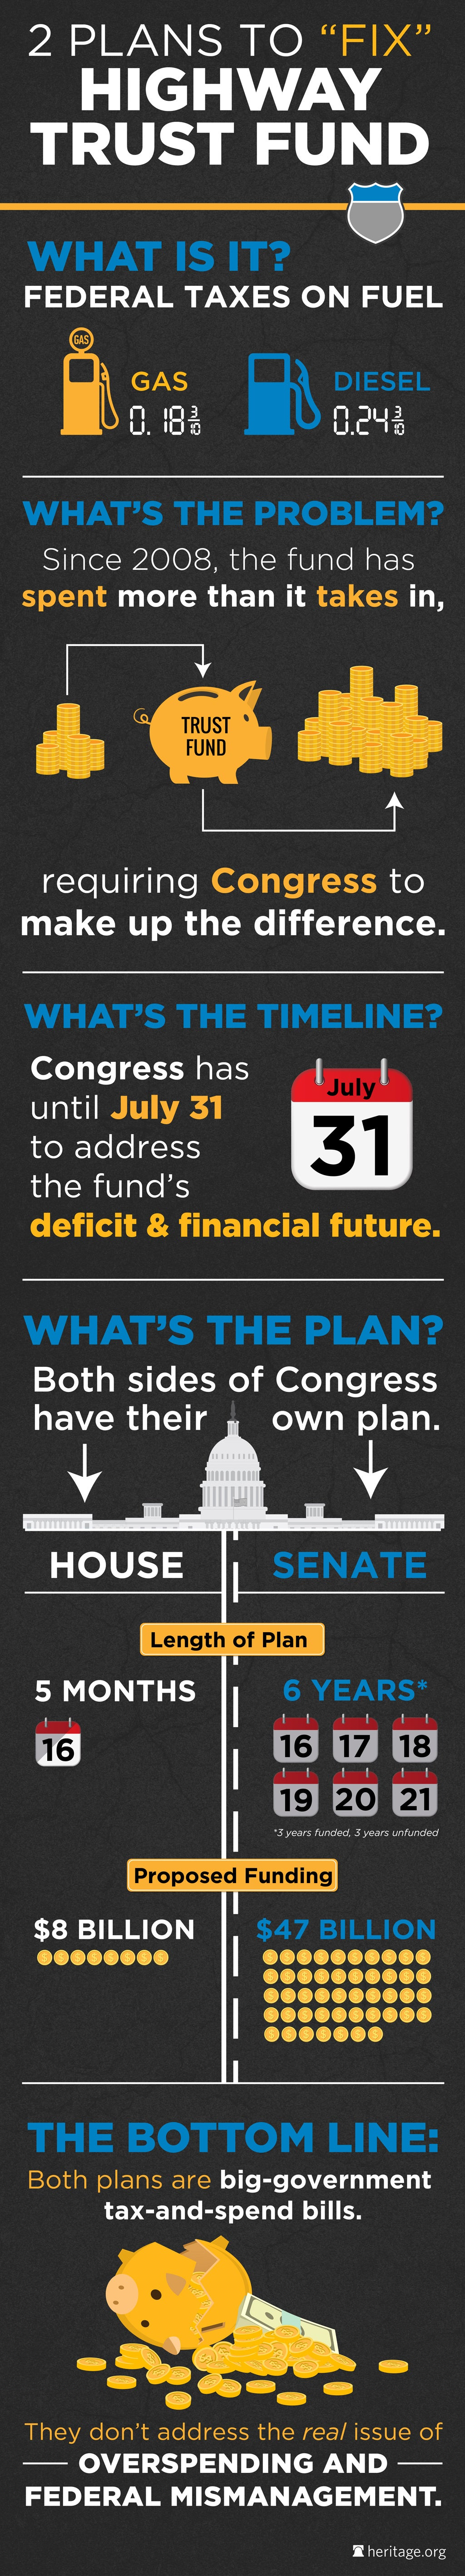 Graphic: Casi Long/The Heritage Foundation